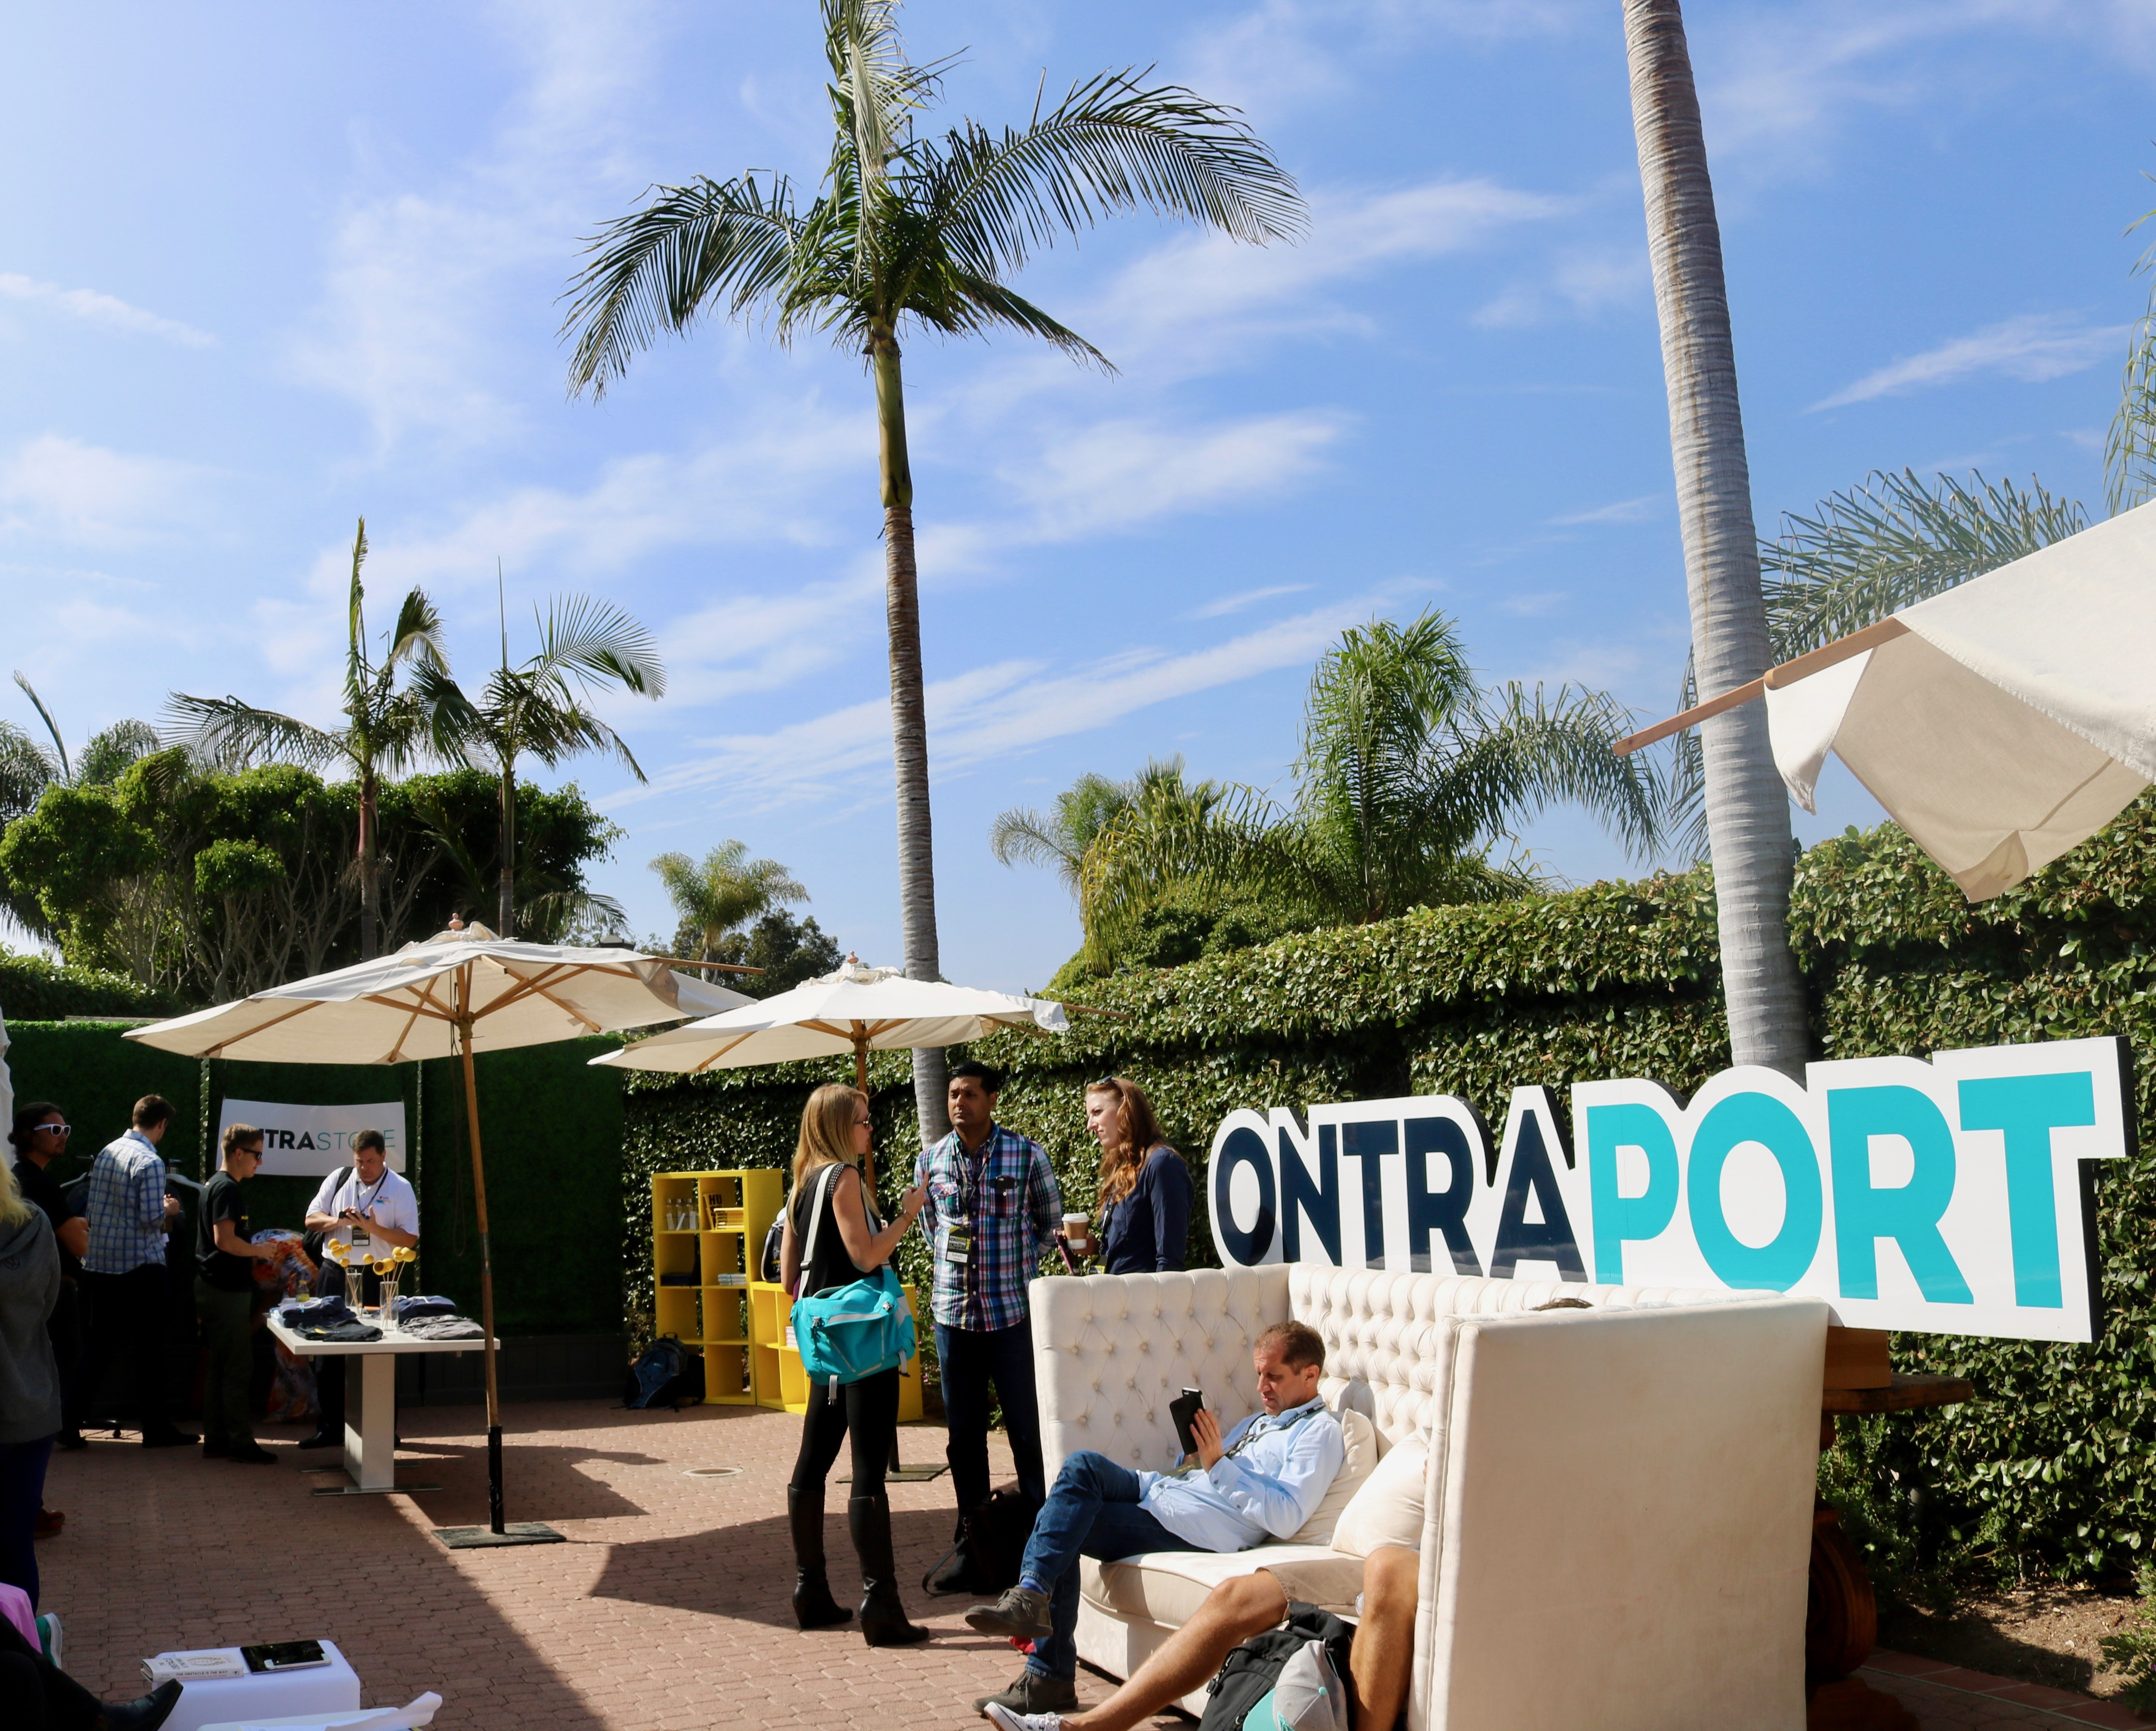 The patio of ONTRApalooza for people to relax and to network with fellow entrepreneurs.